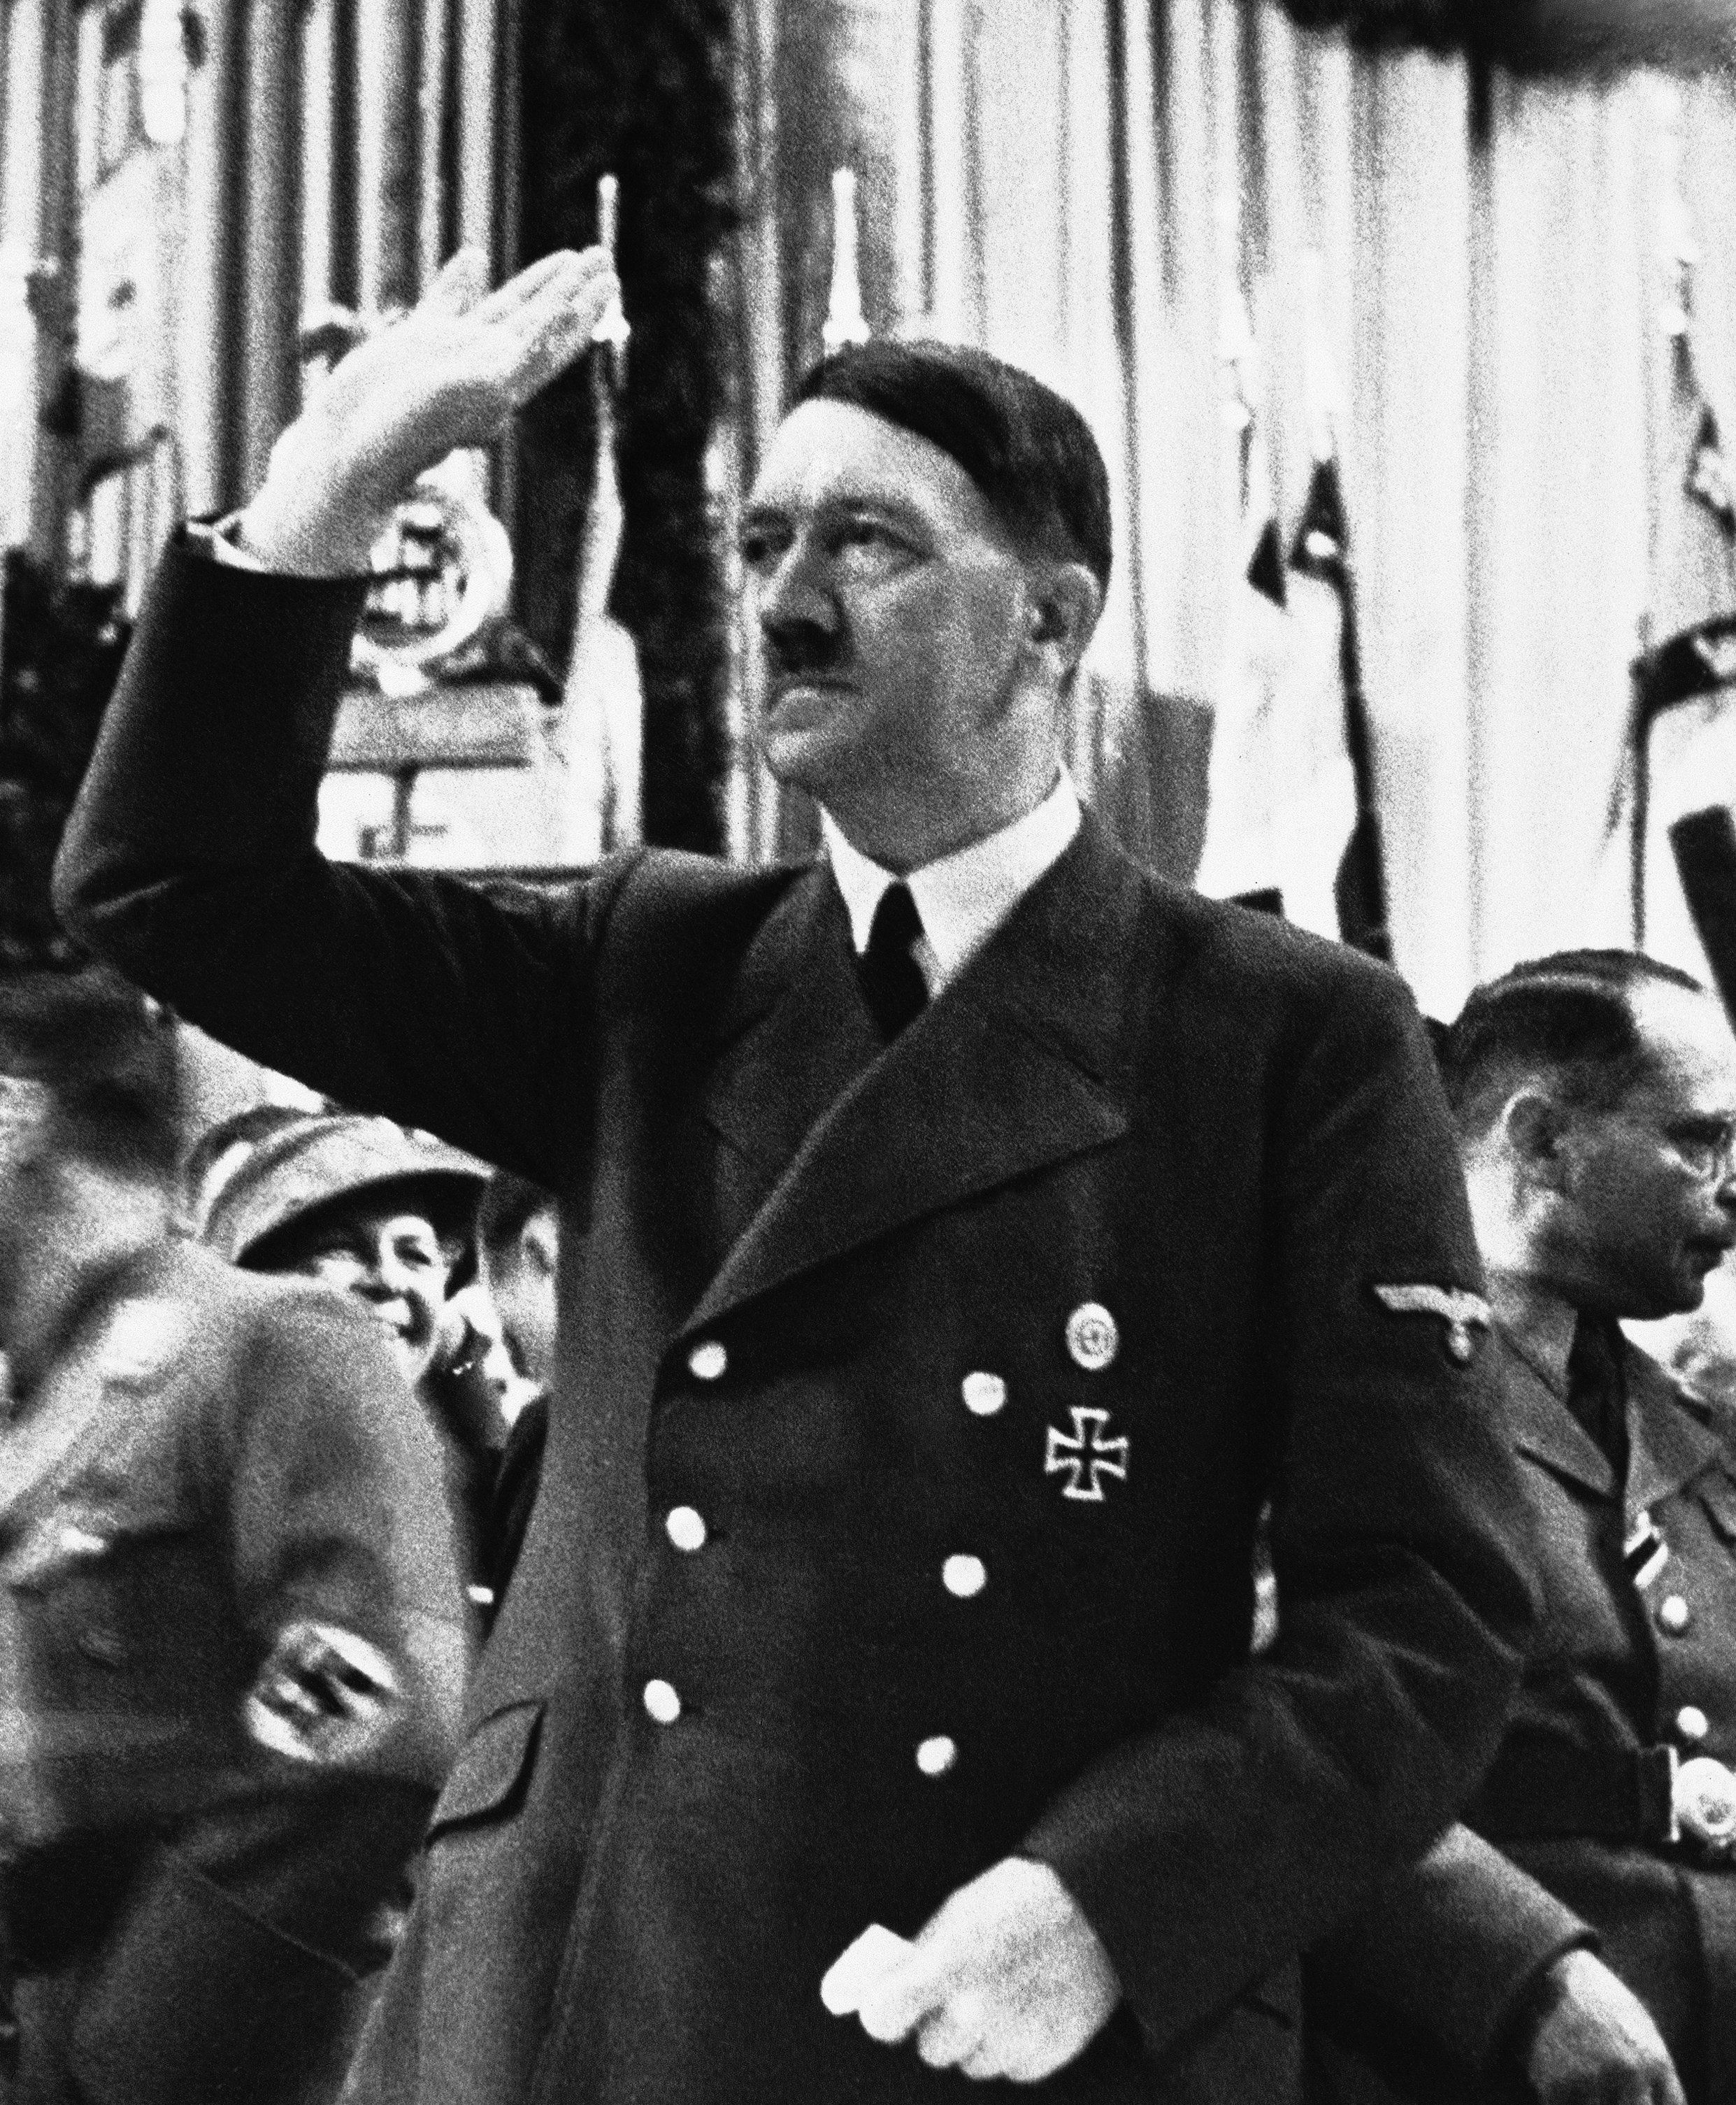 German Chancellor Adolf Hitler acknowledging the audience following a speech in Berlin, Germany on Nov. 18, 1941. (AP Photo)